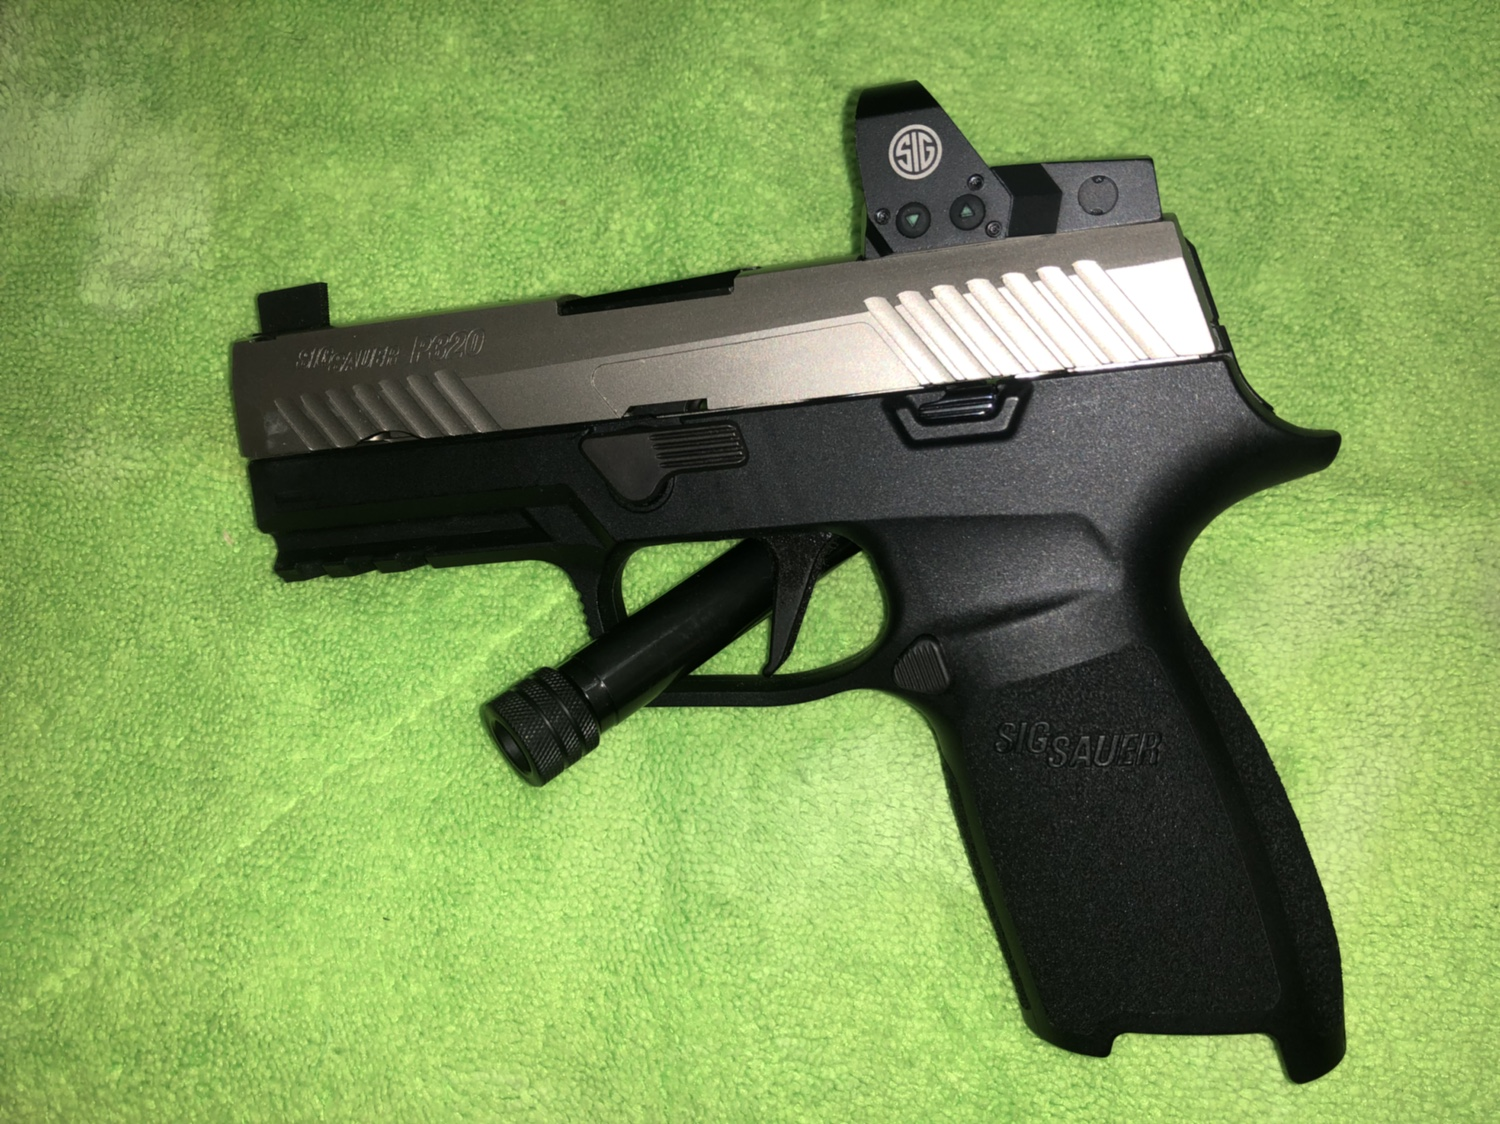 WTS: 2 Sig Sauer P320 RX carry and Sig Sauer P320 RX compact